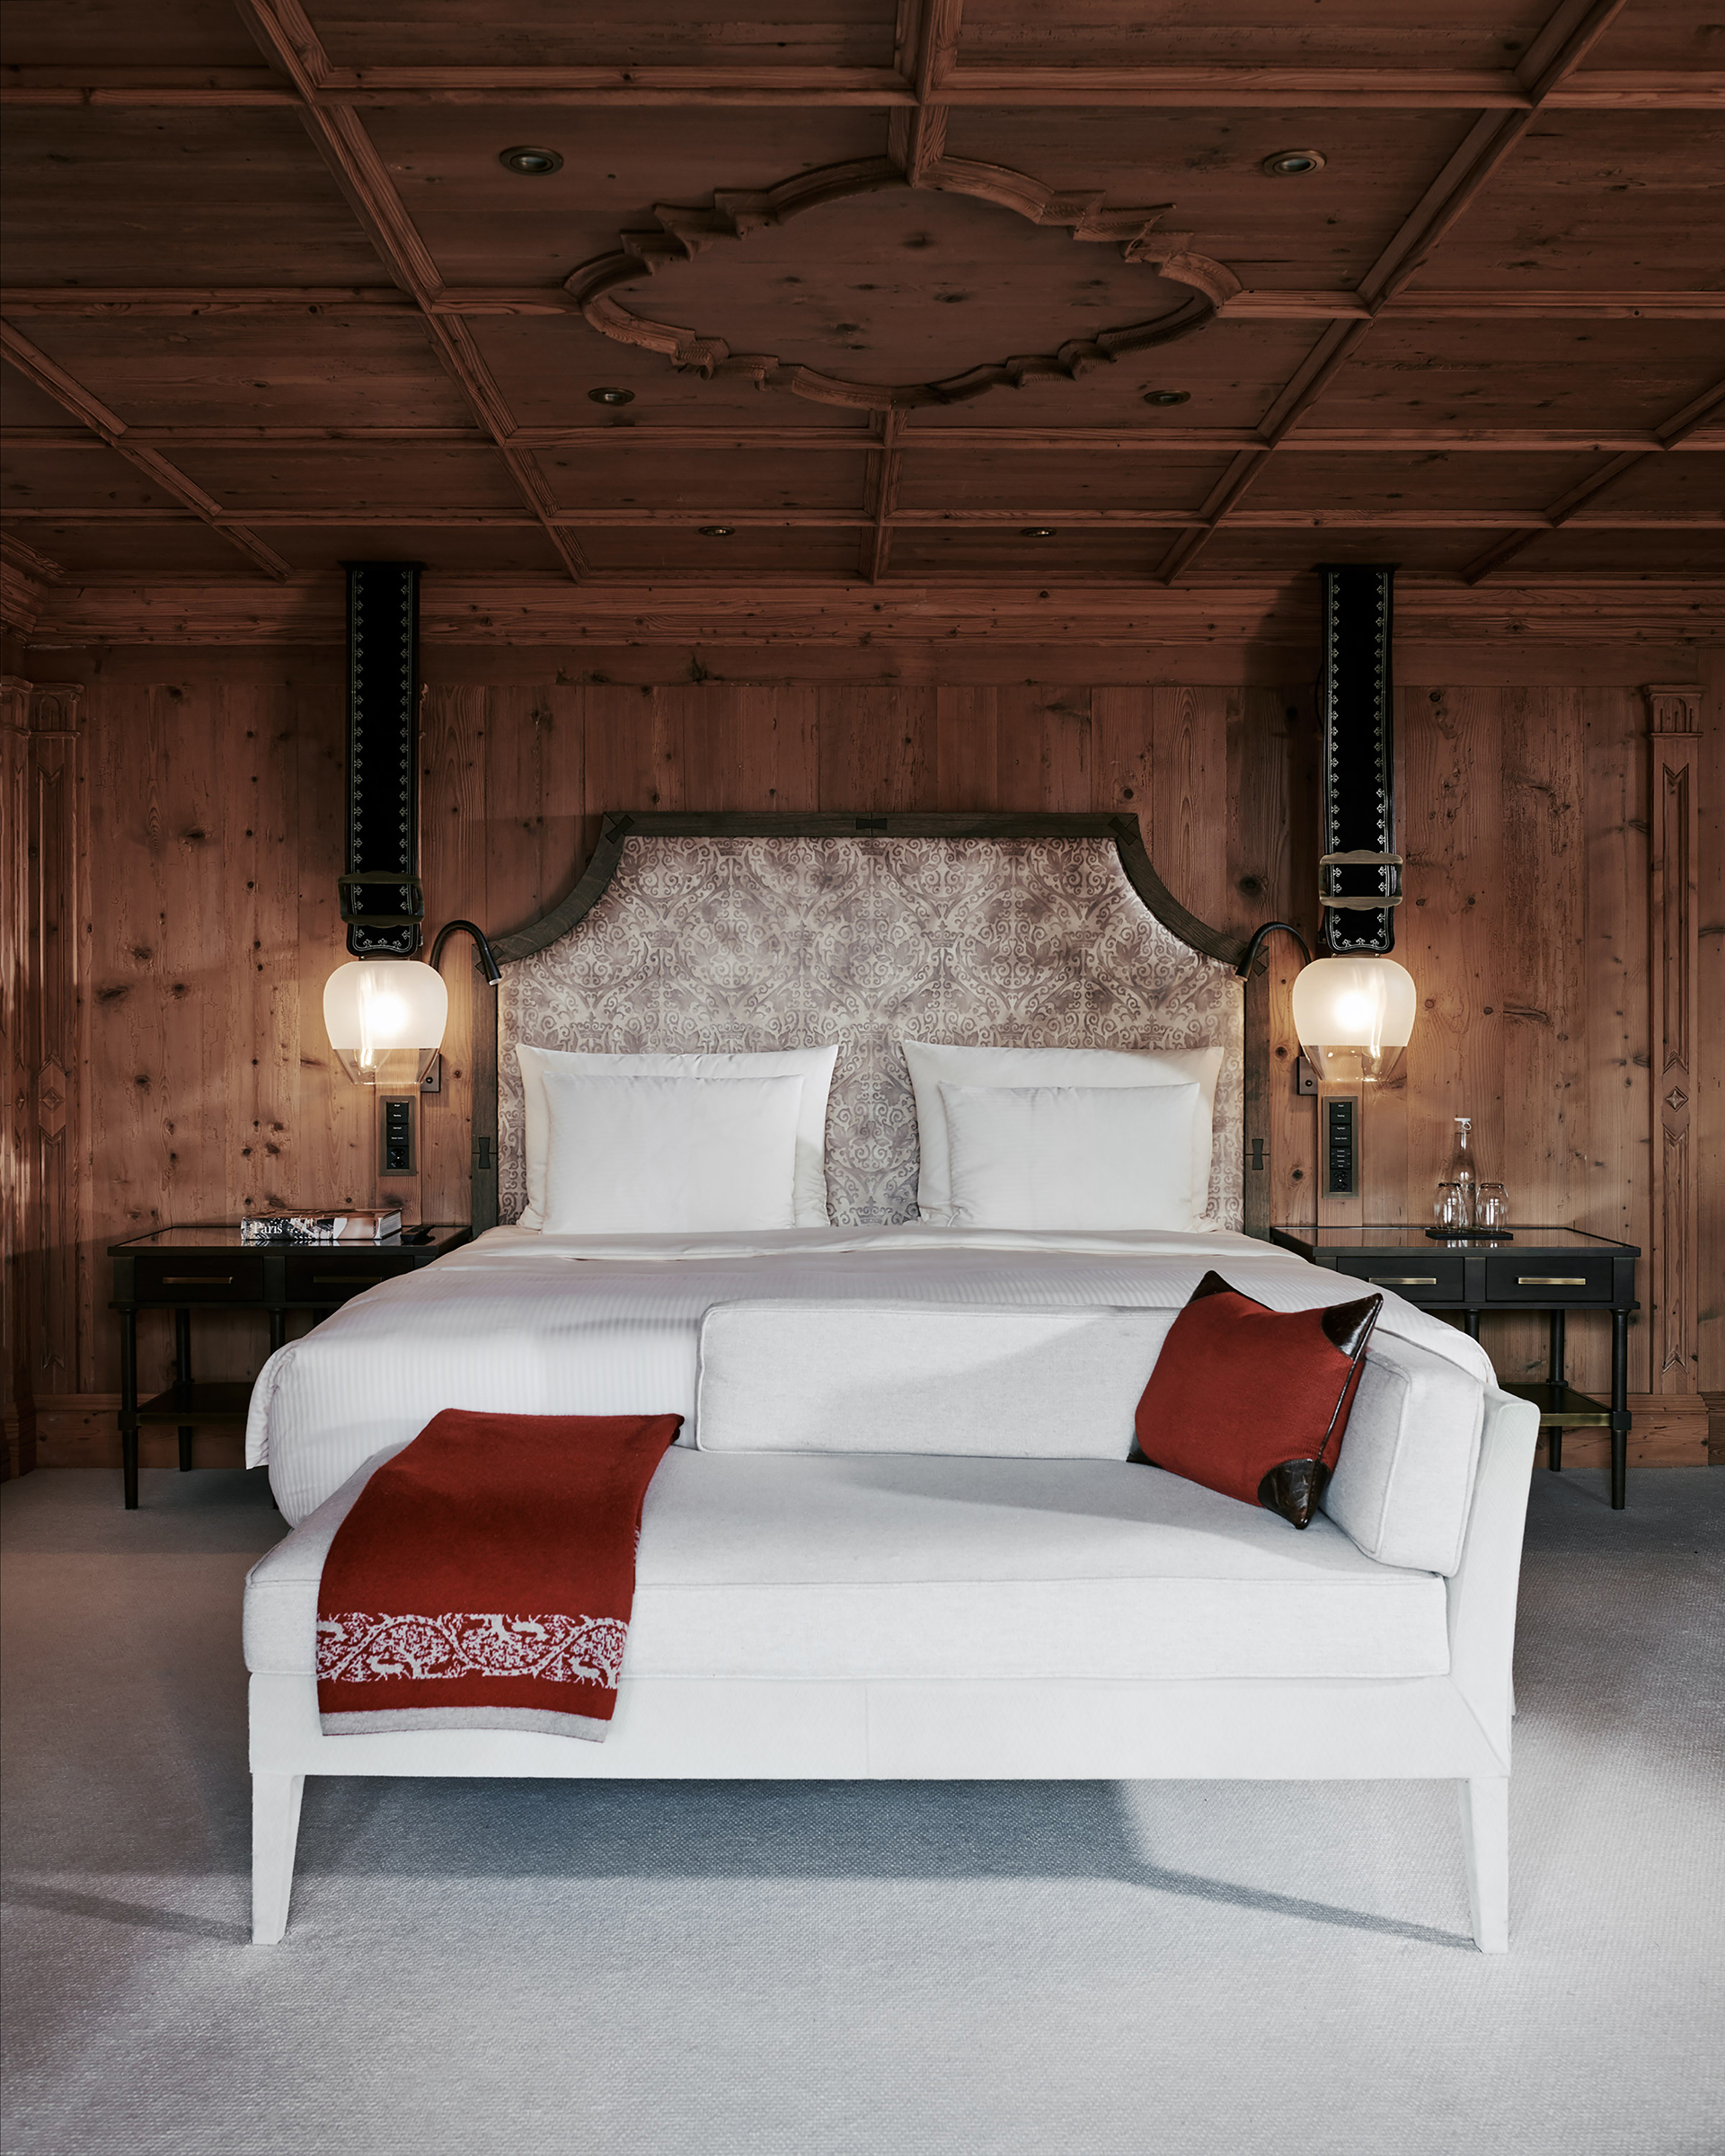 TheAlpinaGstaad_Rooms&Suites_0190_1920.jpg